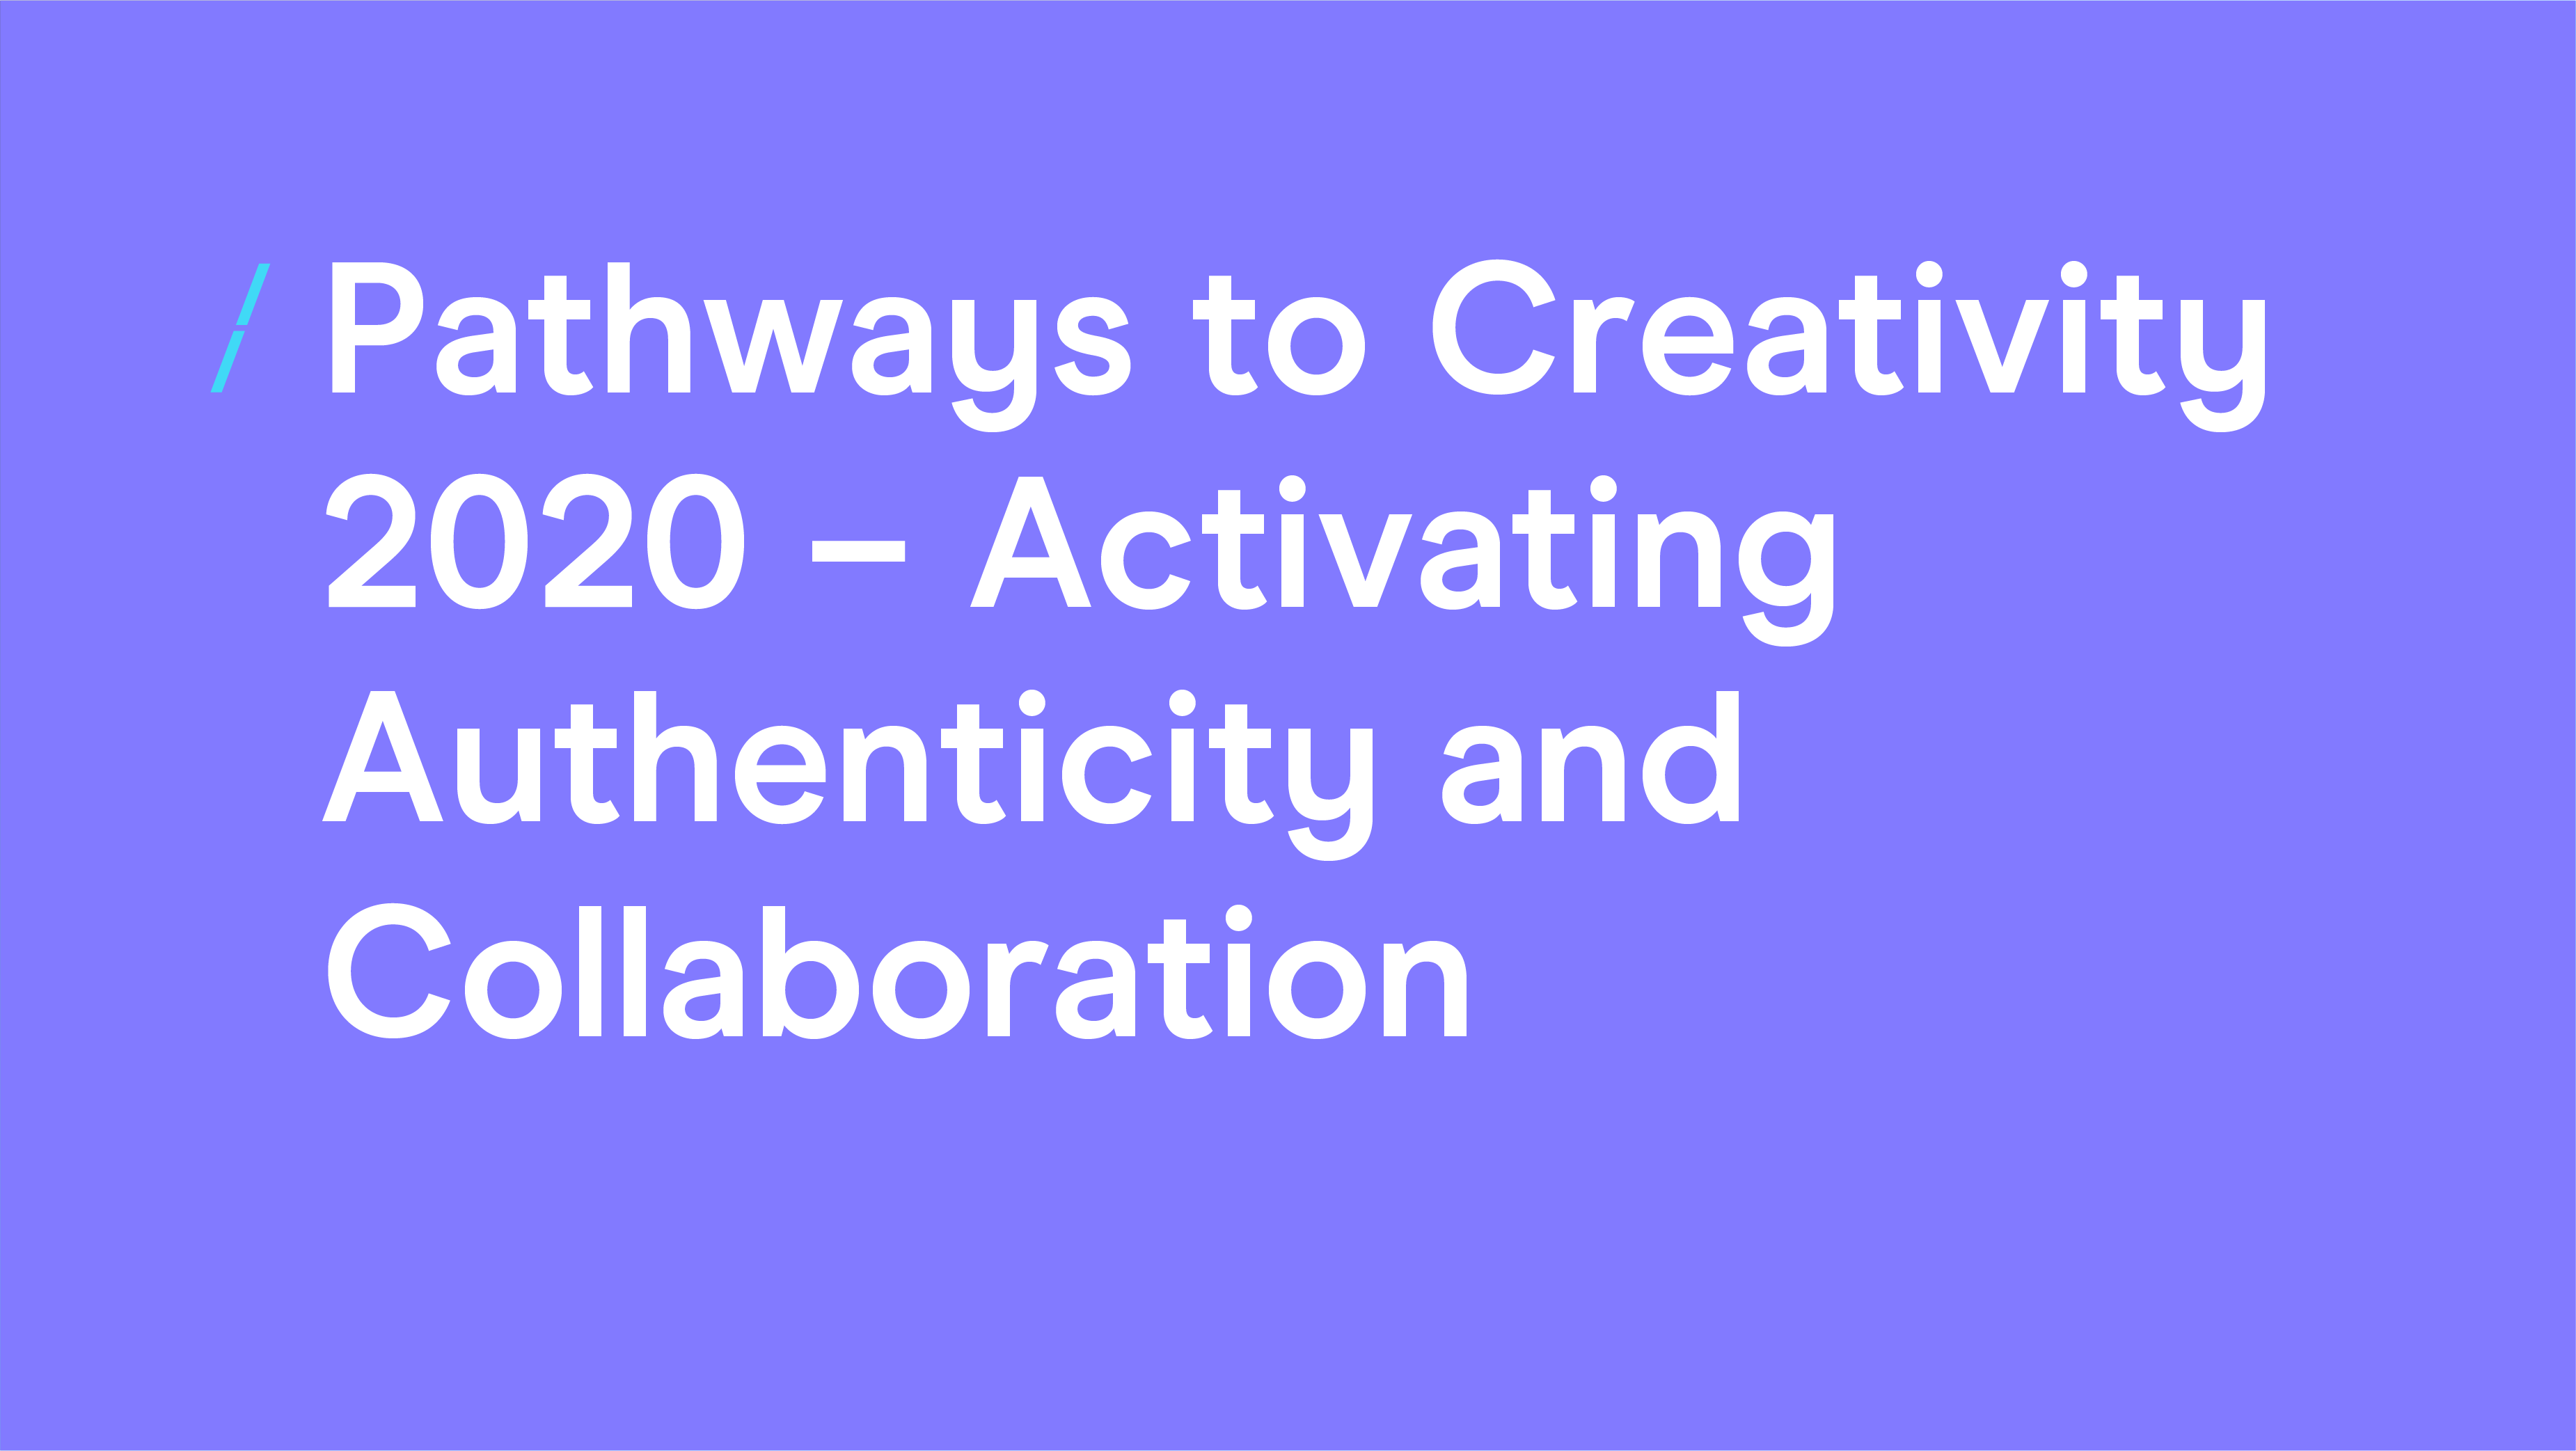 Pathways to Creativity 2020 - Activating Authenticity and Collaboration.png